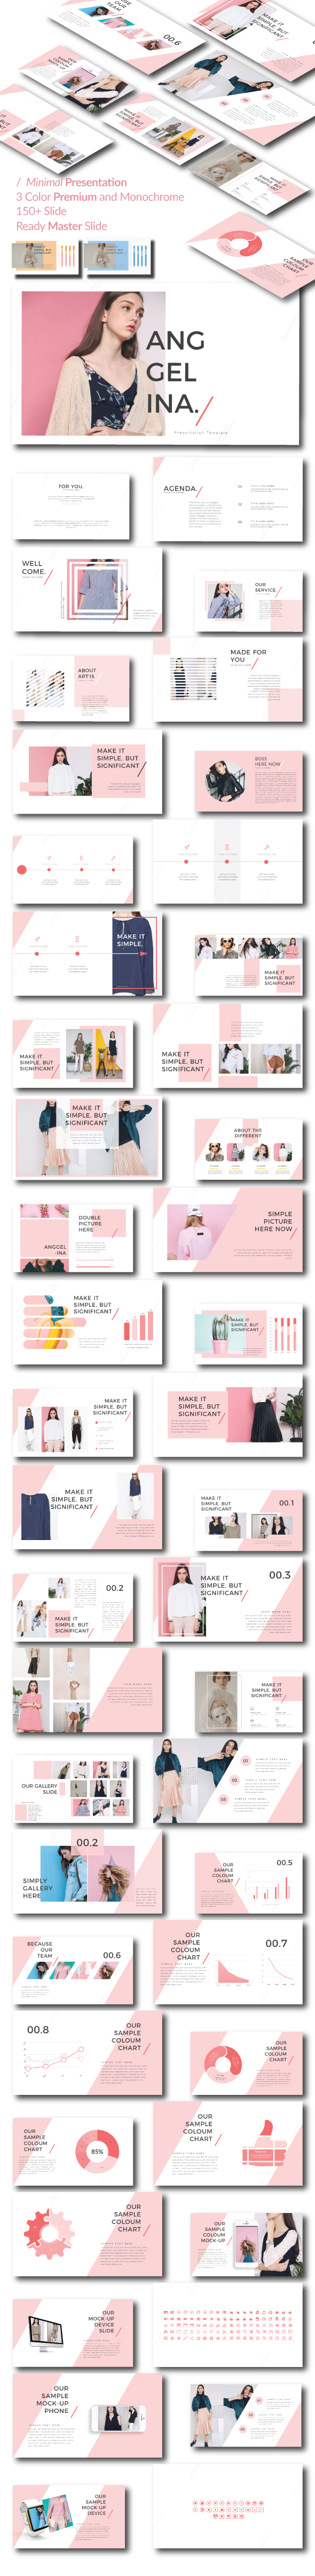 GraphicRiver Anggelina Powerpoint Template 21060703